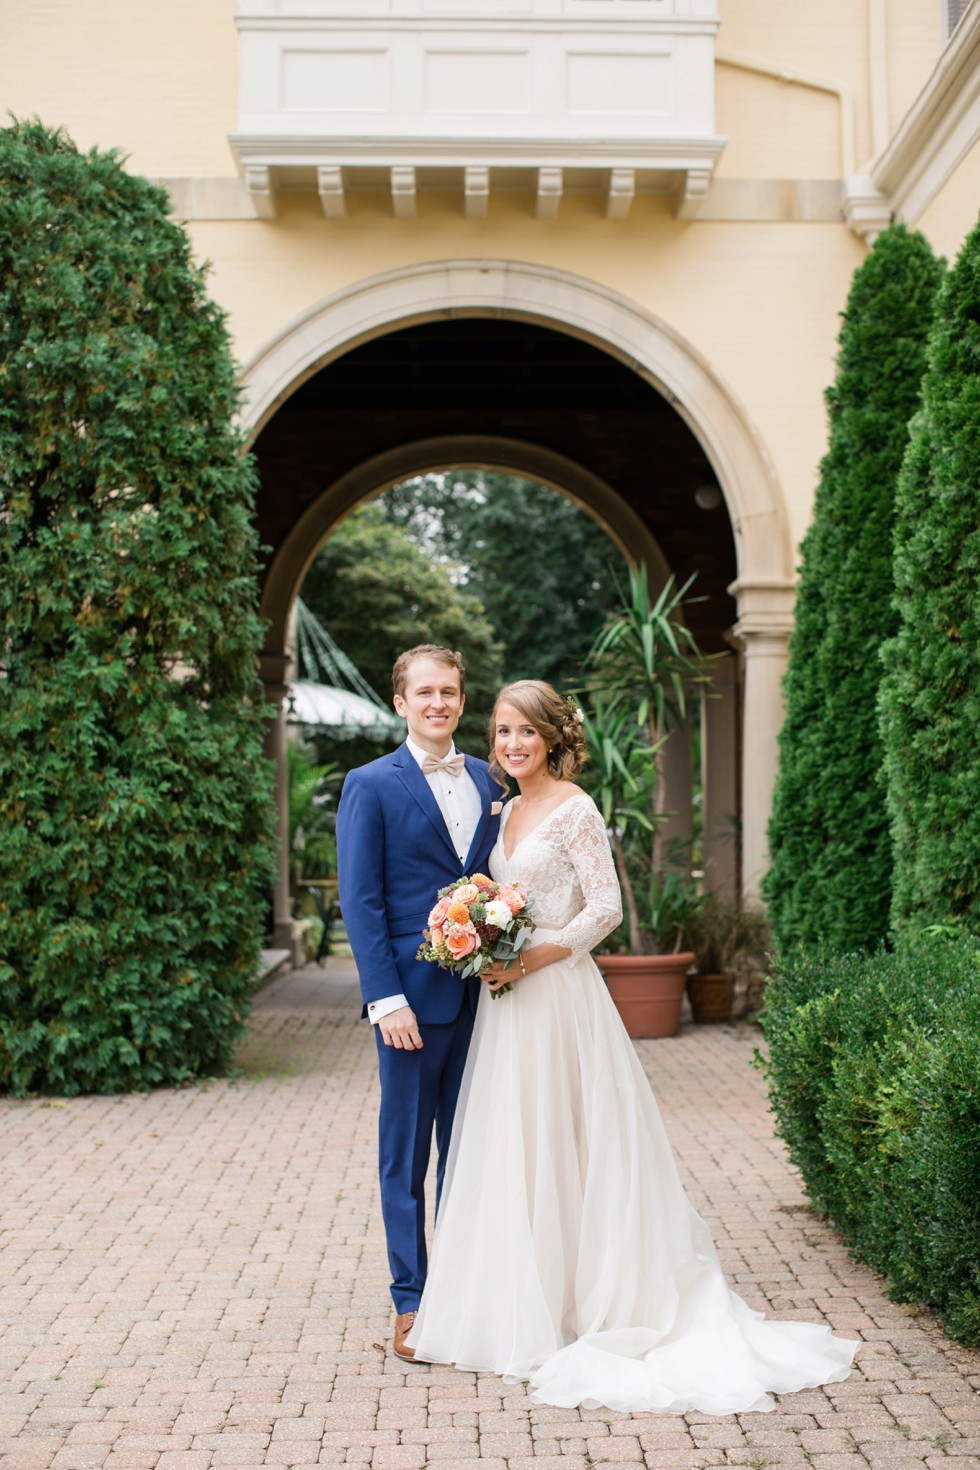 Evergreen Museum and Library wedding